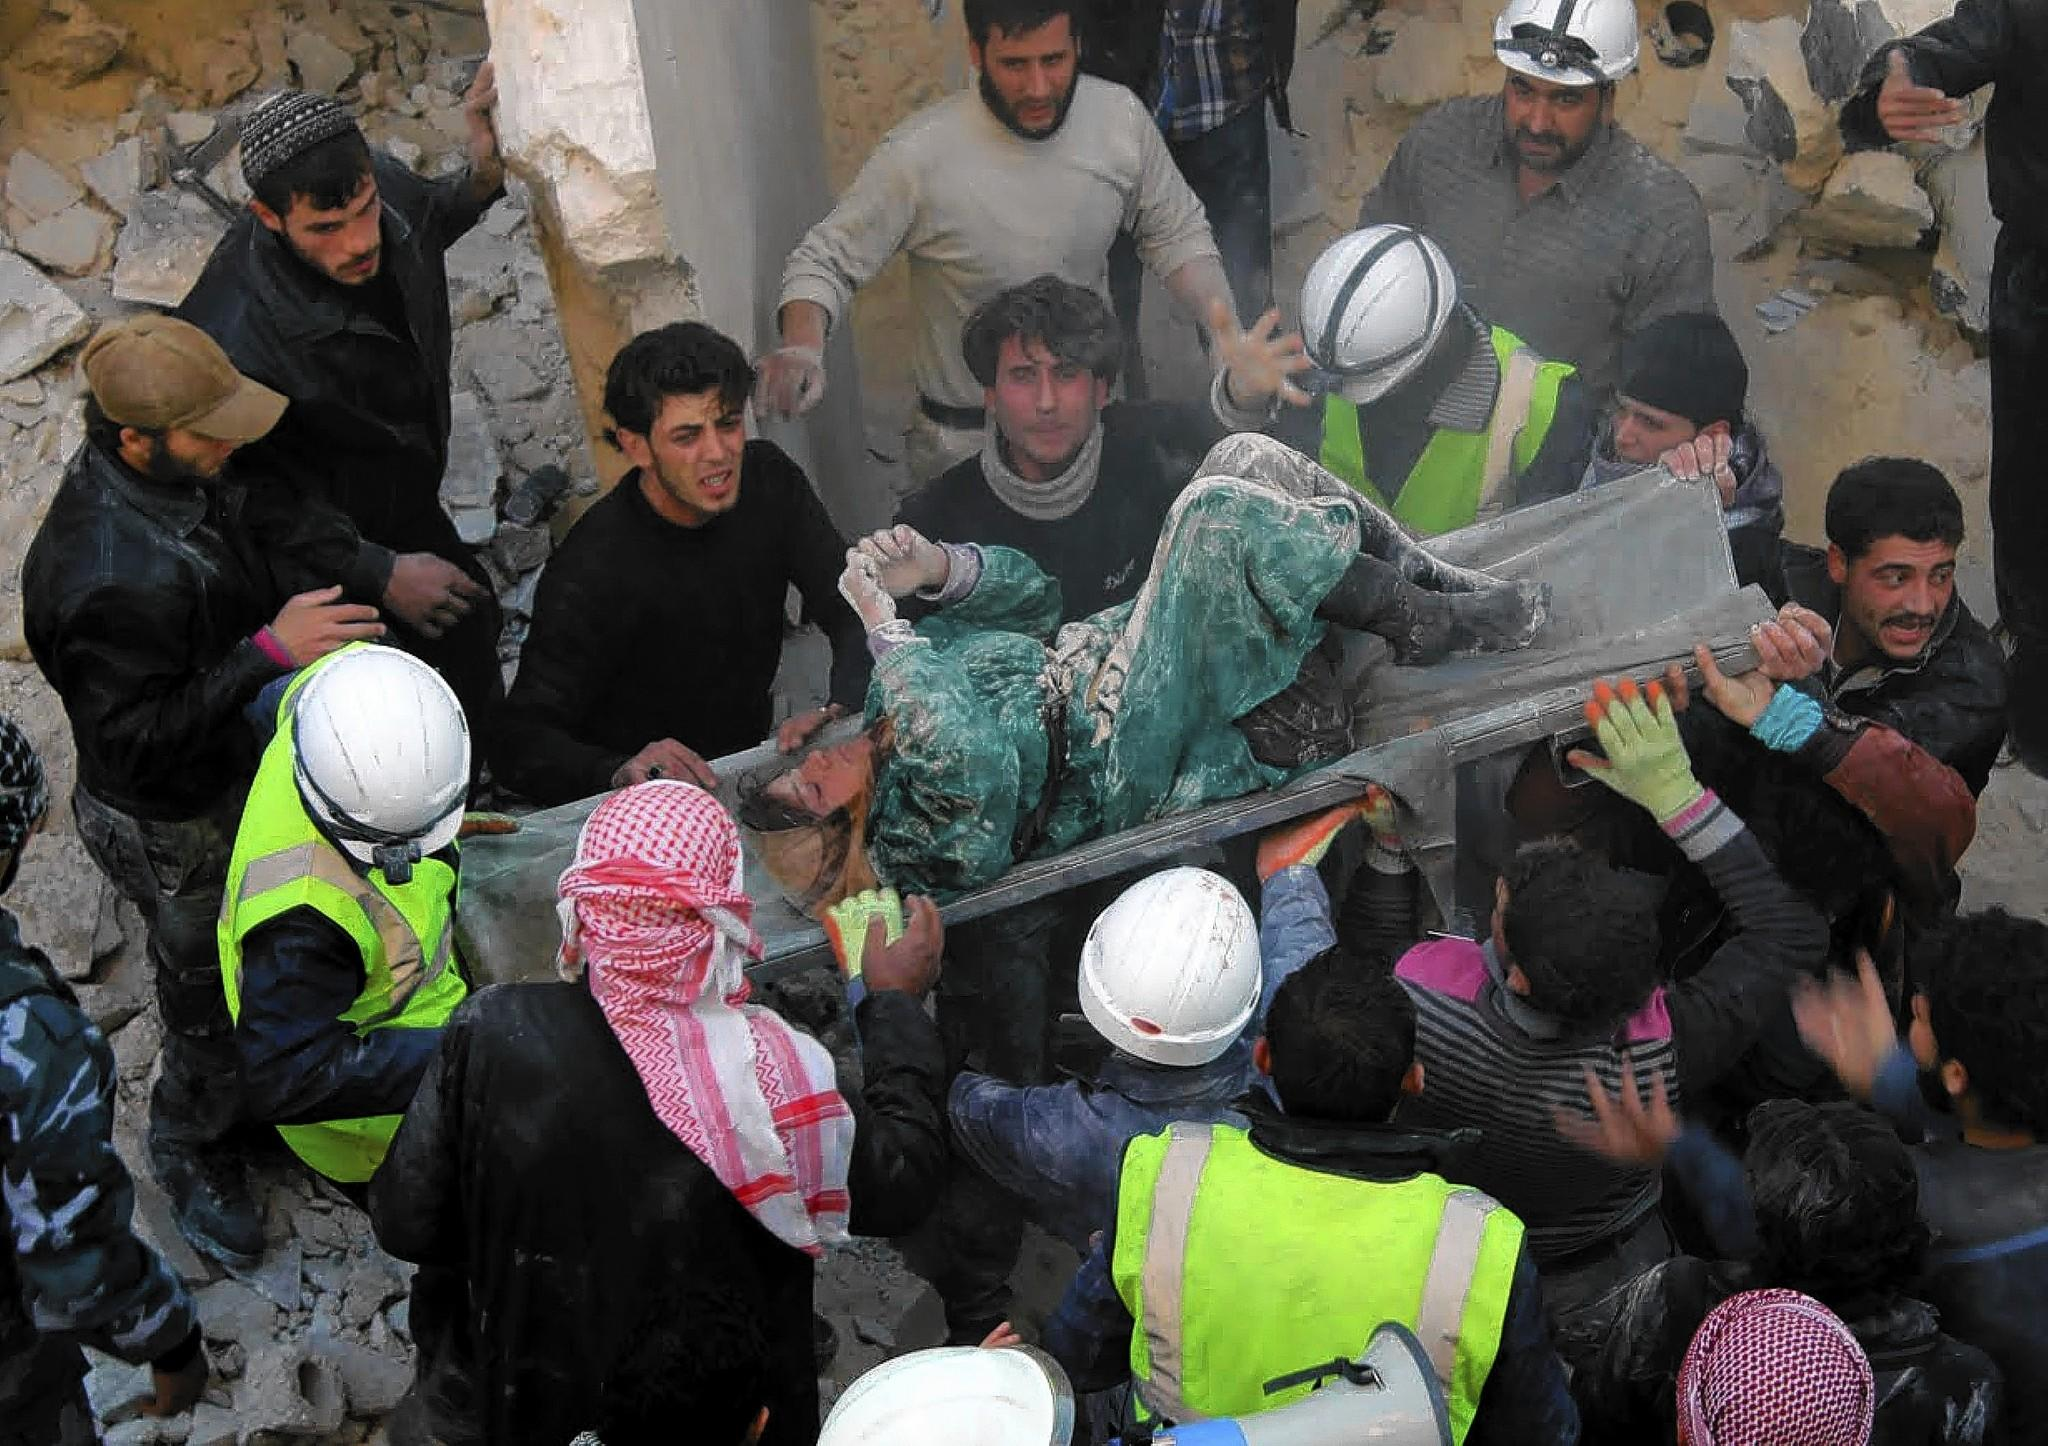 The body of a woman is carried out of the rubble in the northern Syrian city of Aleppo on Saturday as people search for survivors after airstrikes by Syrian forces.